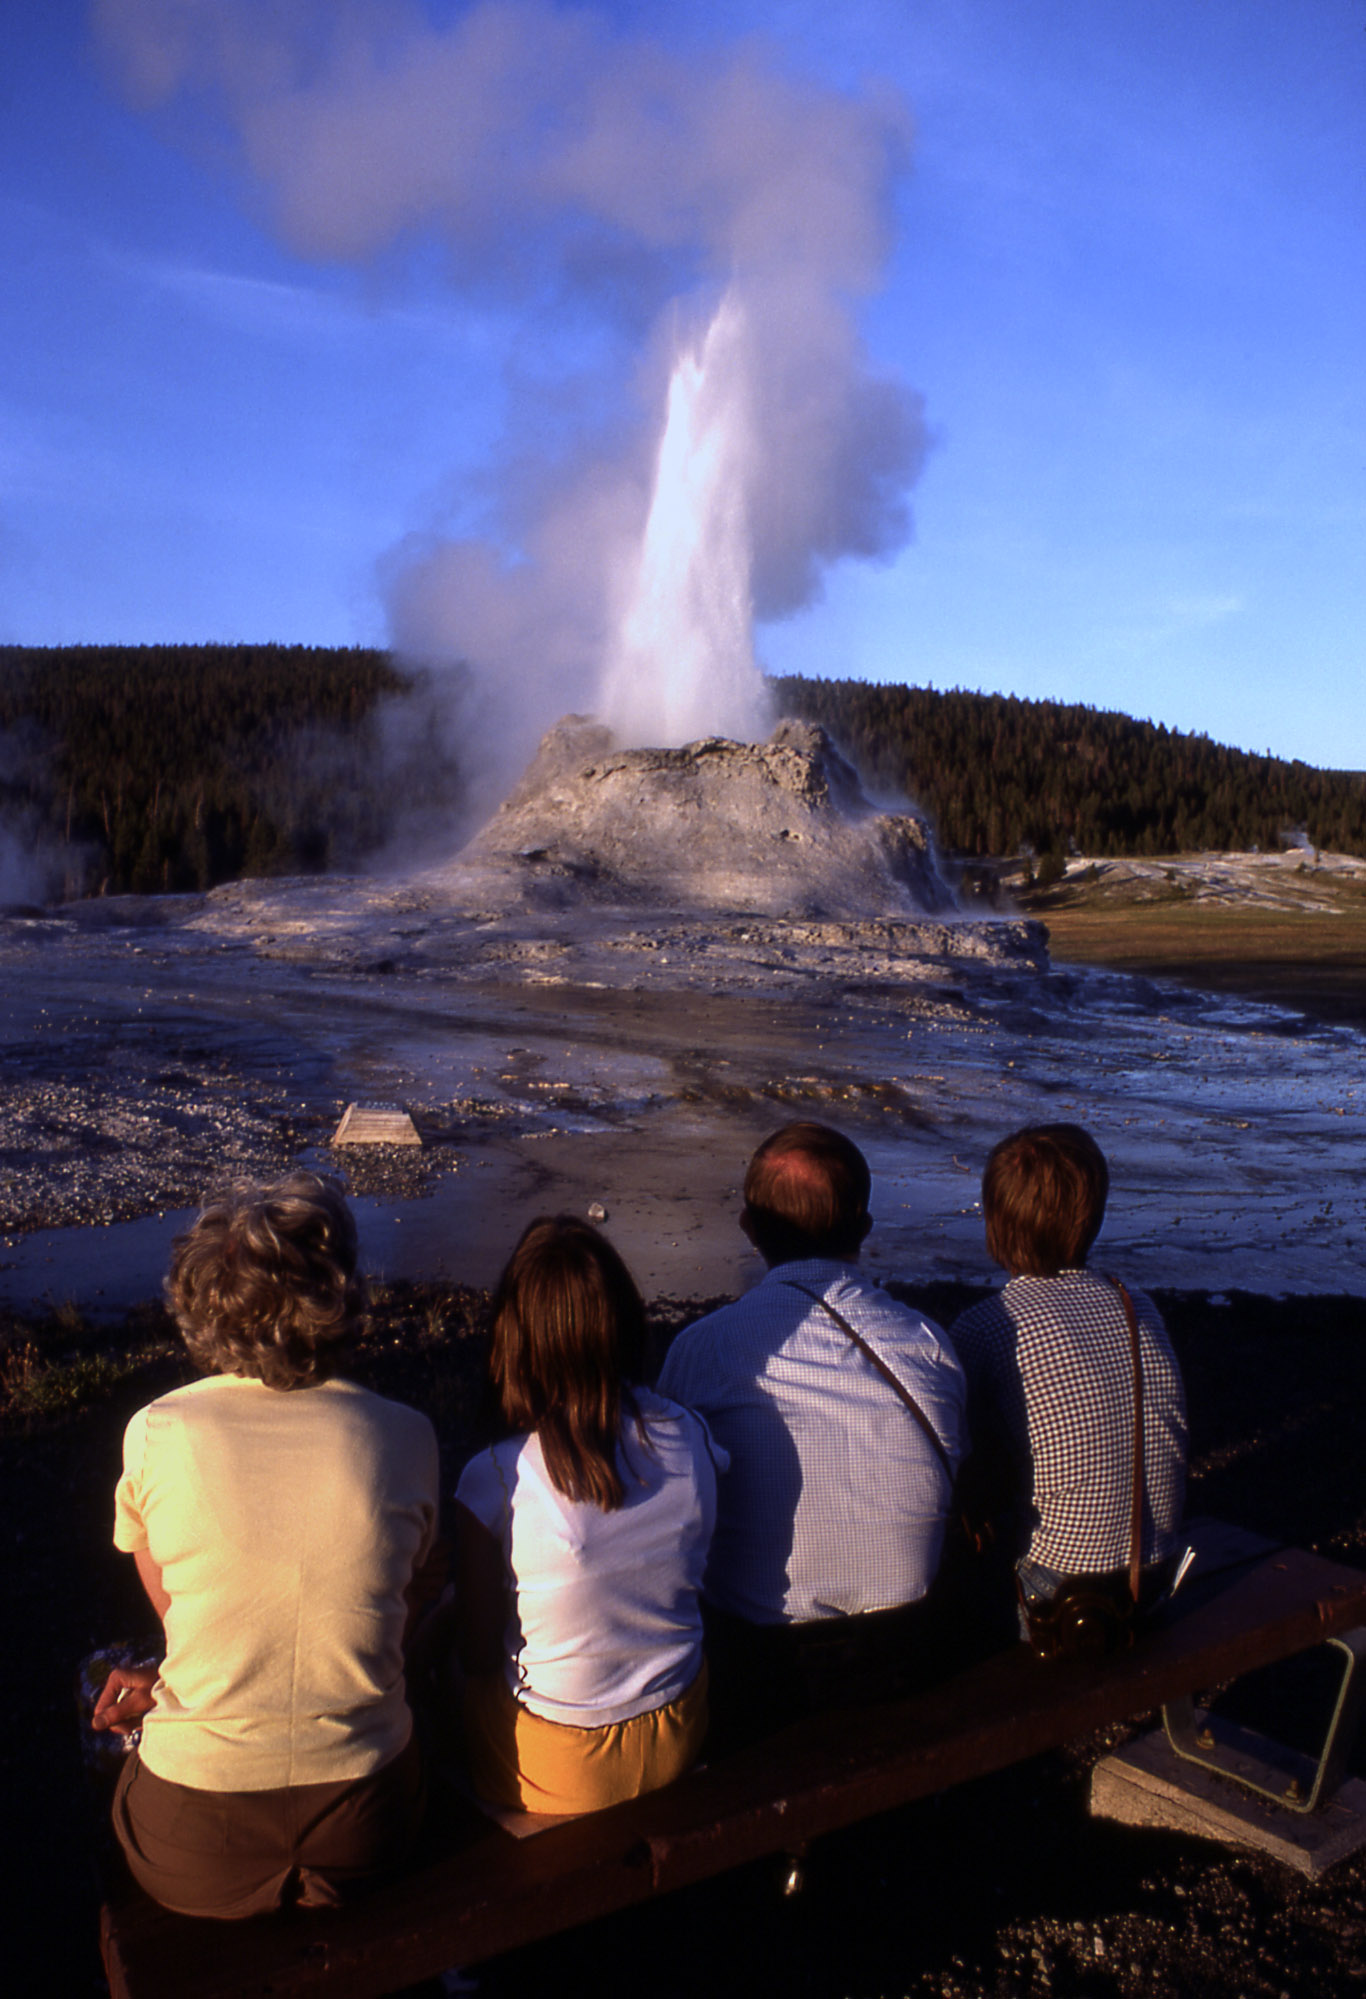 Watching the geyser the